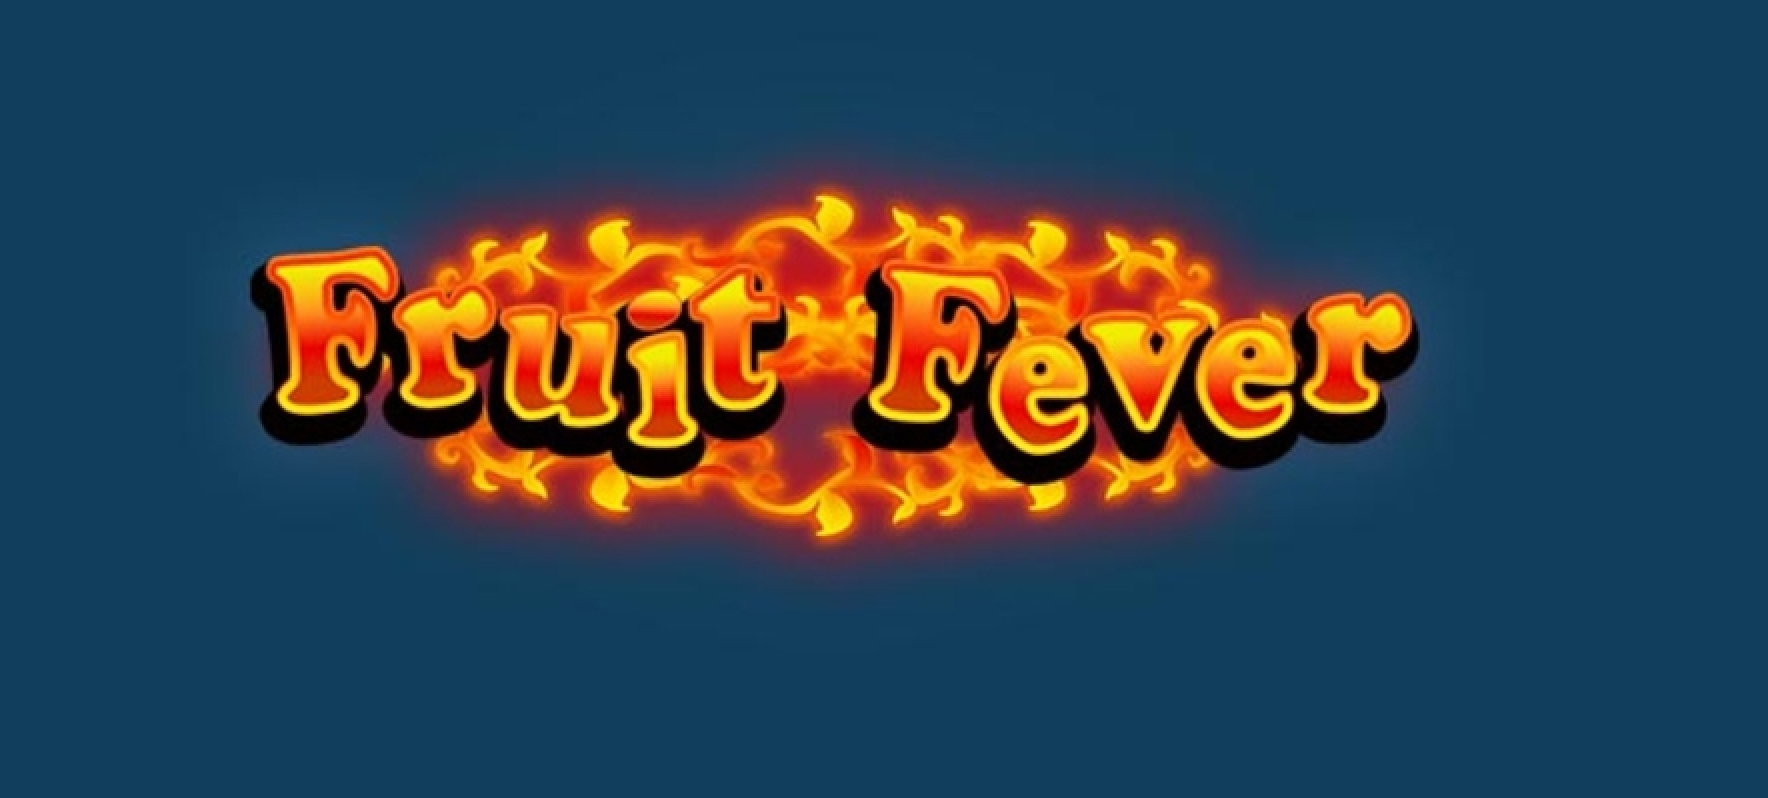 Win Money in Fruit Fever Free Slot Game by Swintt